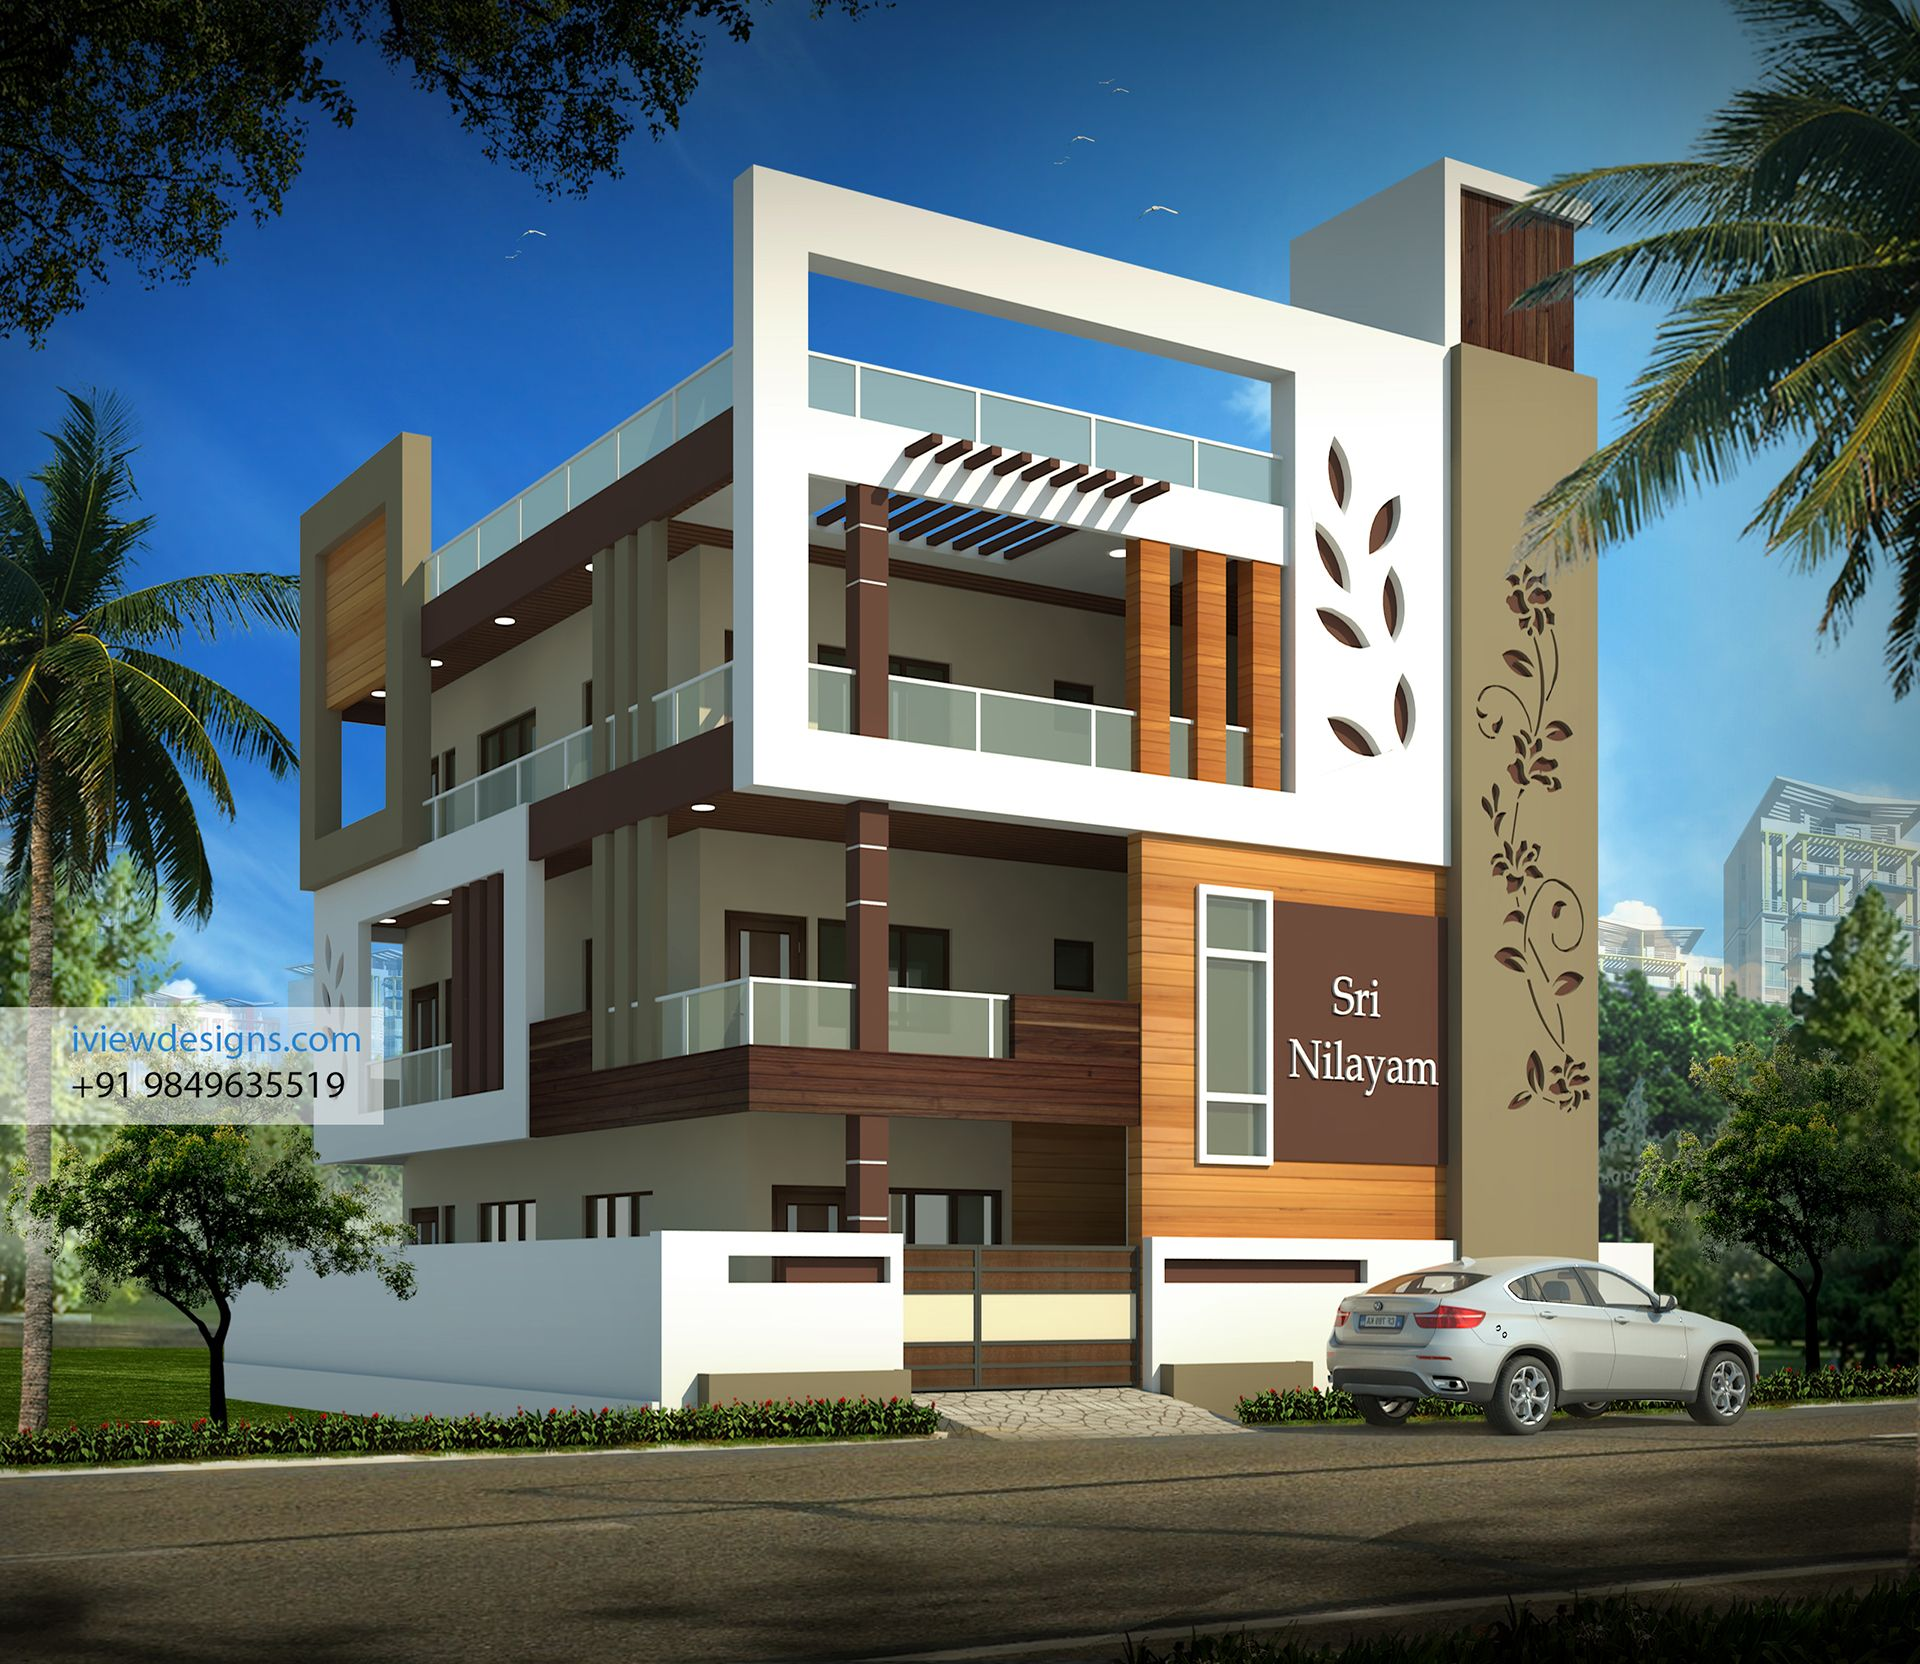 Villa on behance interiors in 2019 house front design